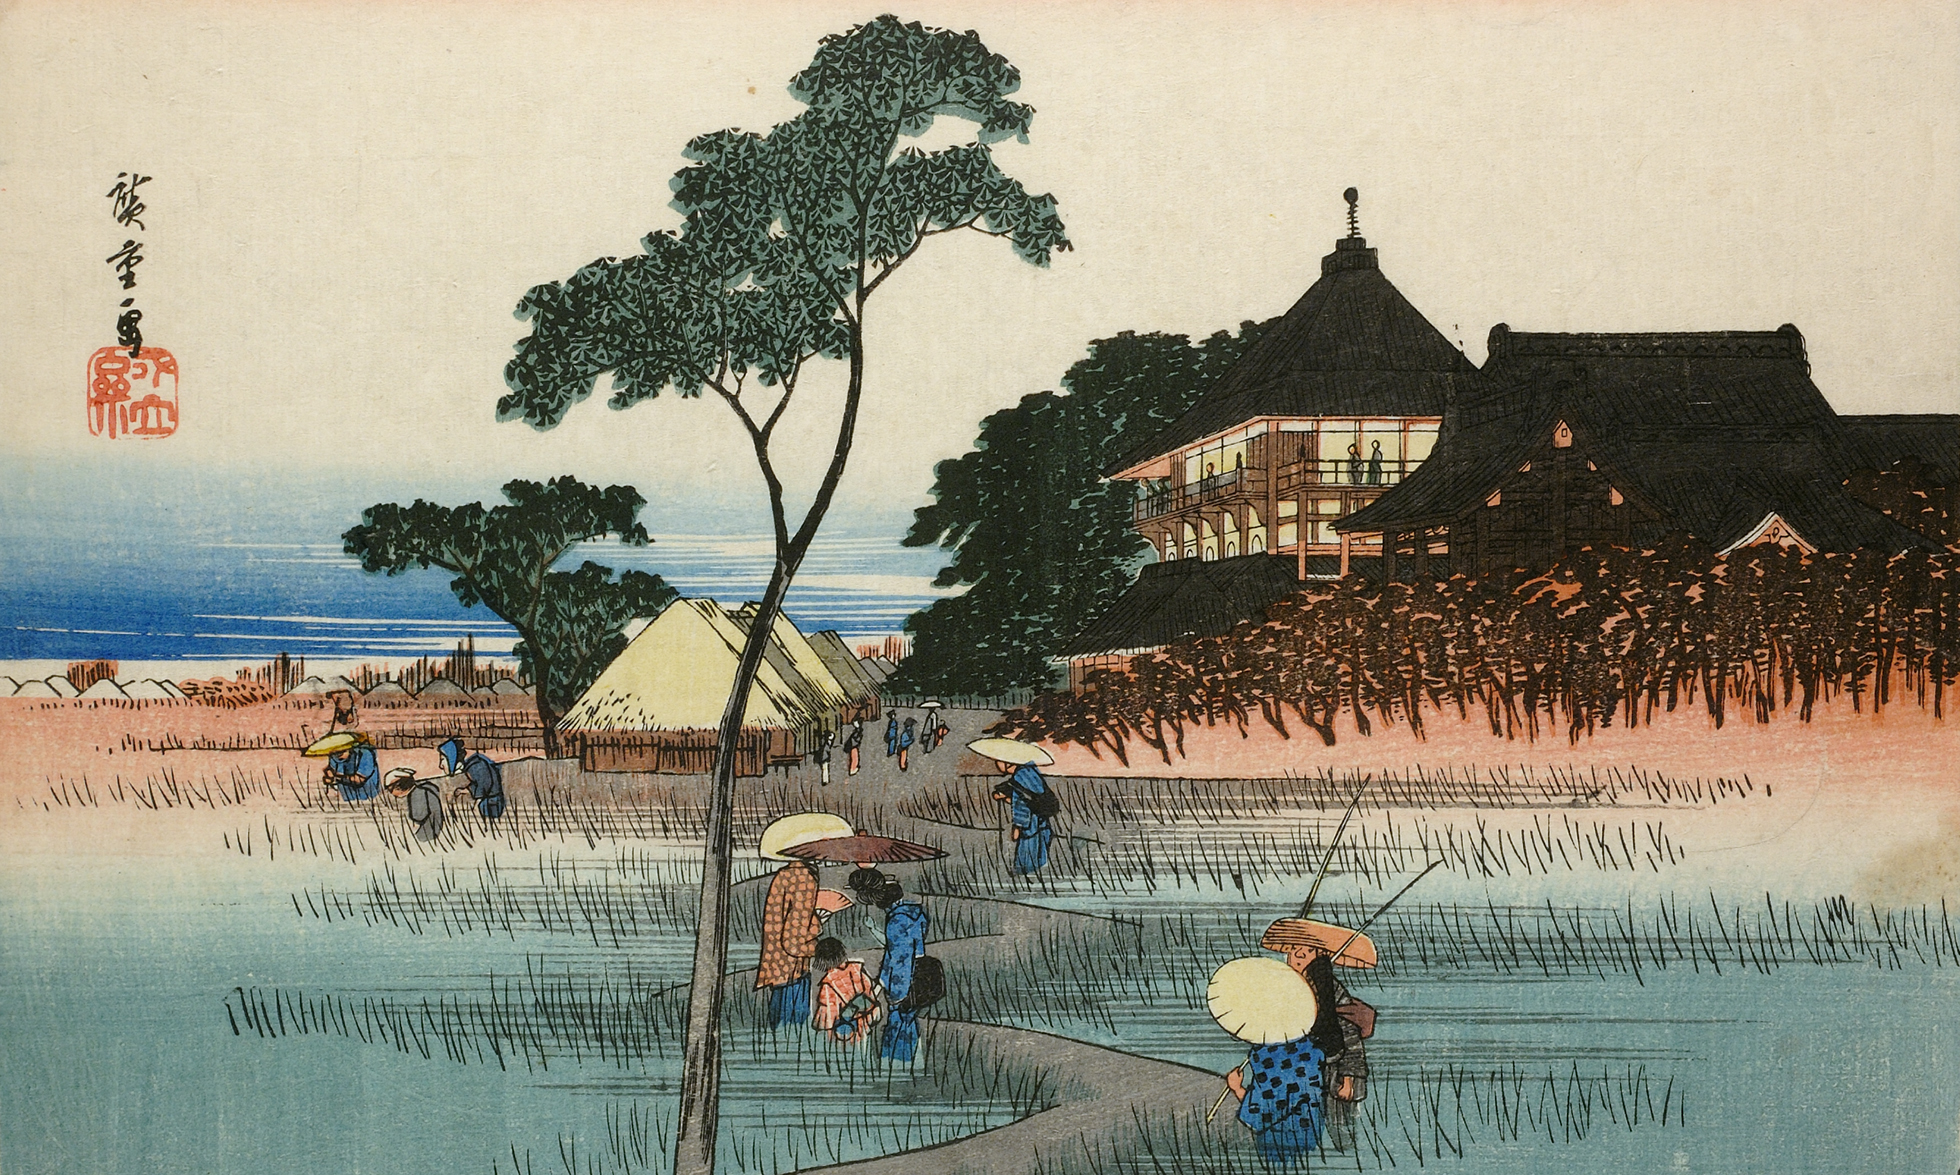 A colour woodblock print showing the Sanso Hall. Visitors walk along a winding path towards the hall that sits on high ground. People enjoy the view from the balcony.